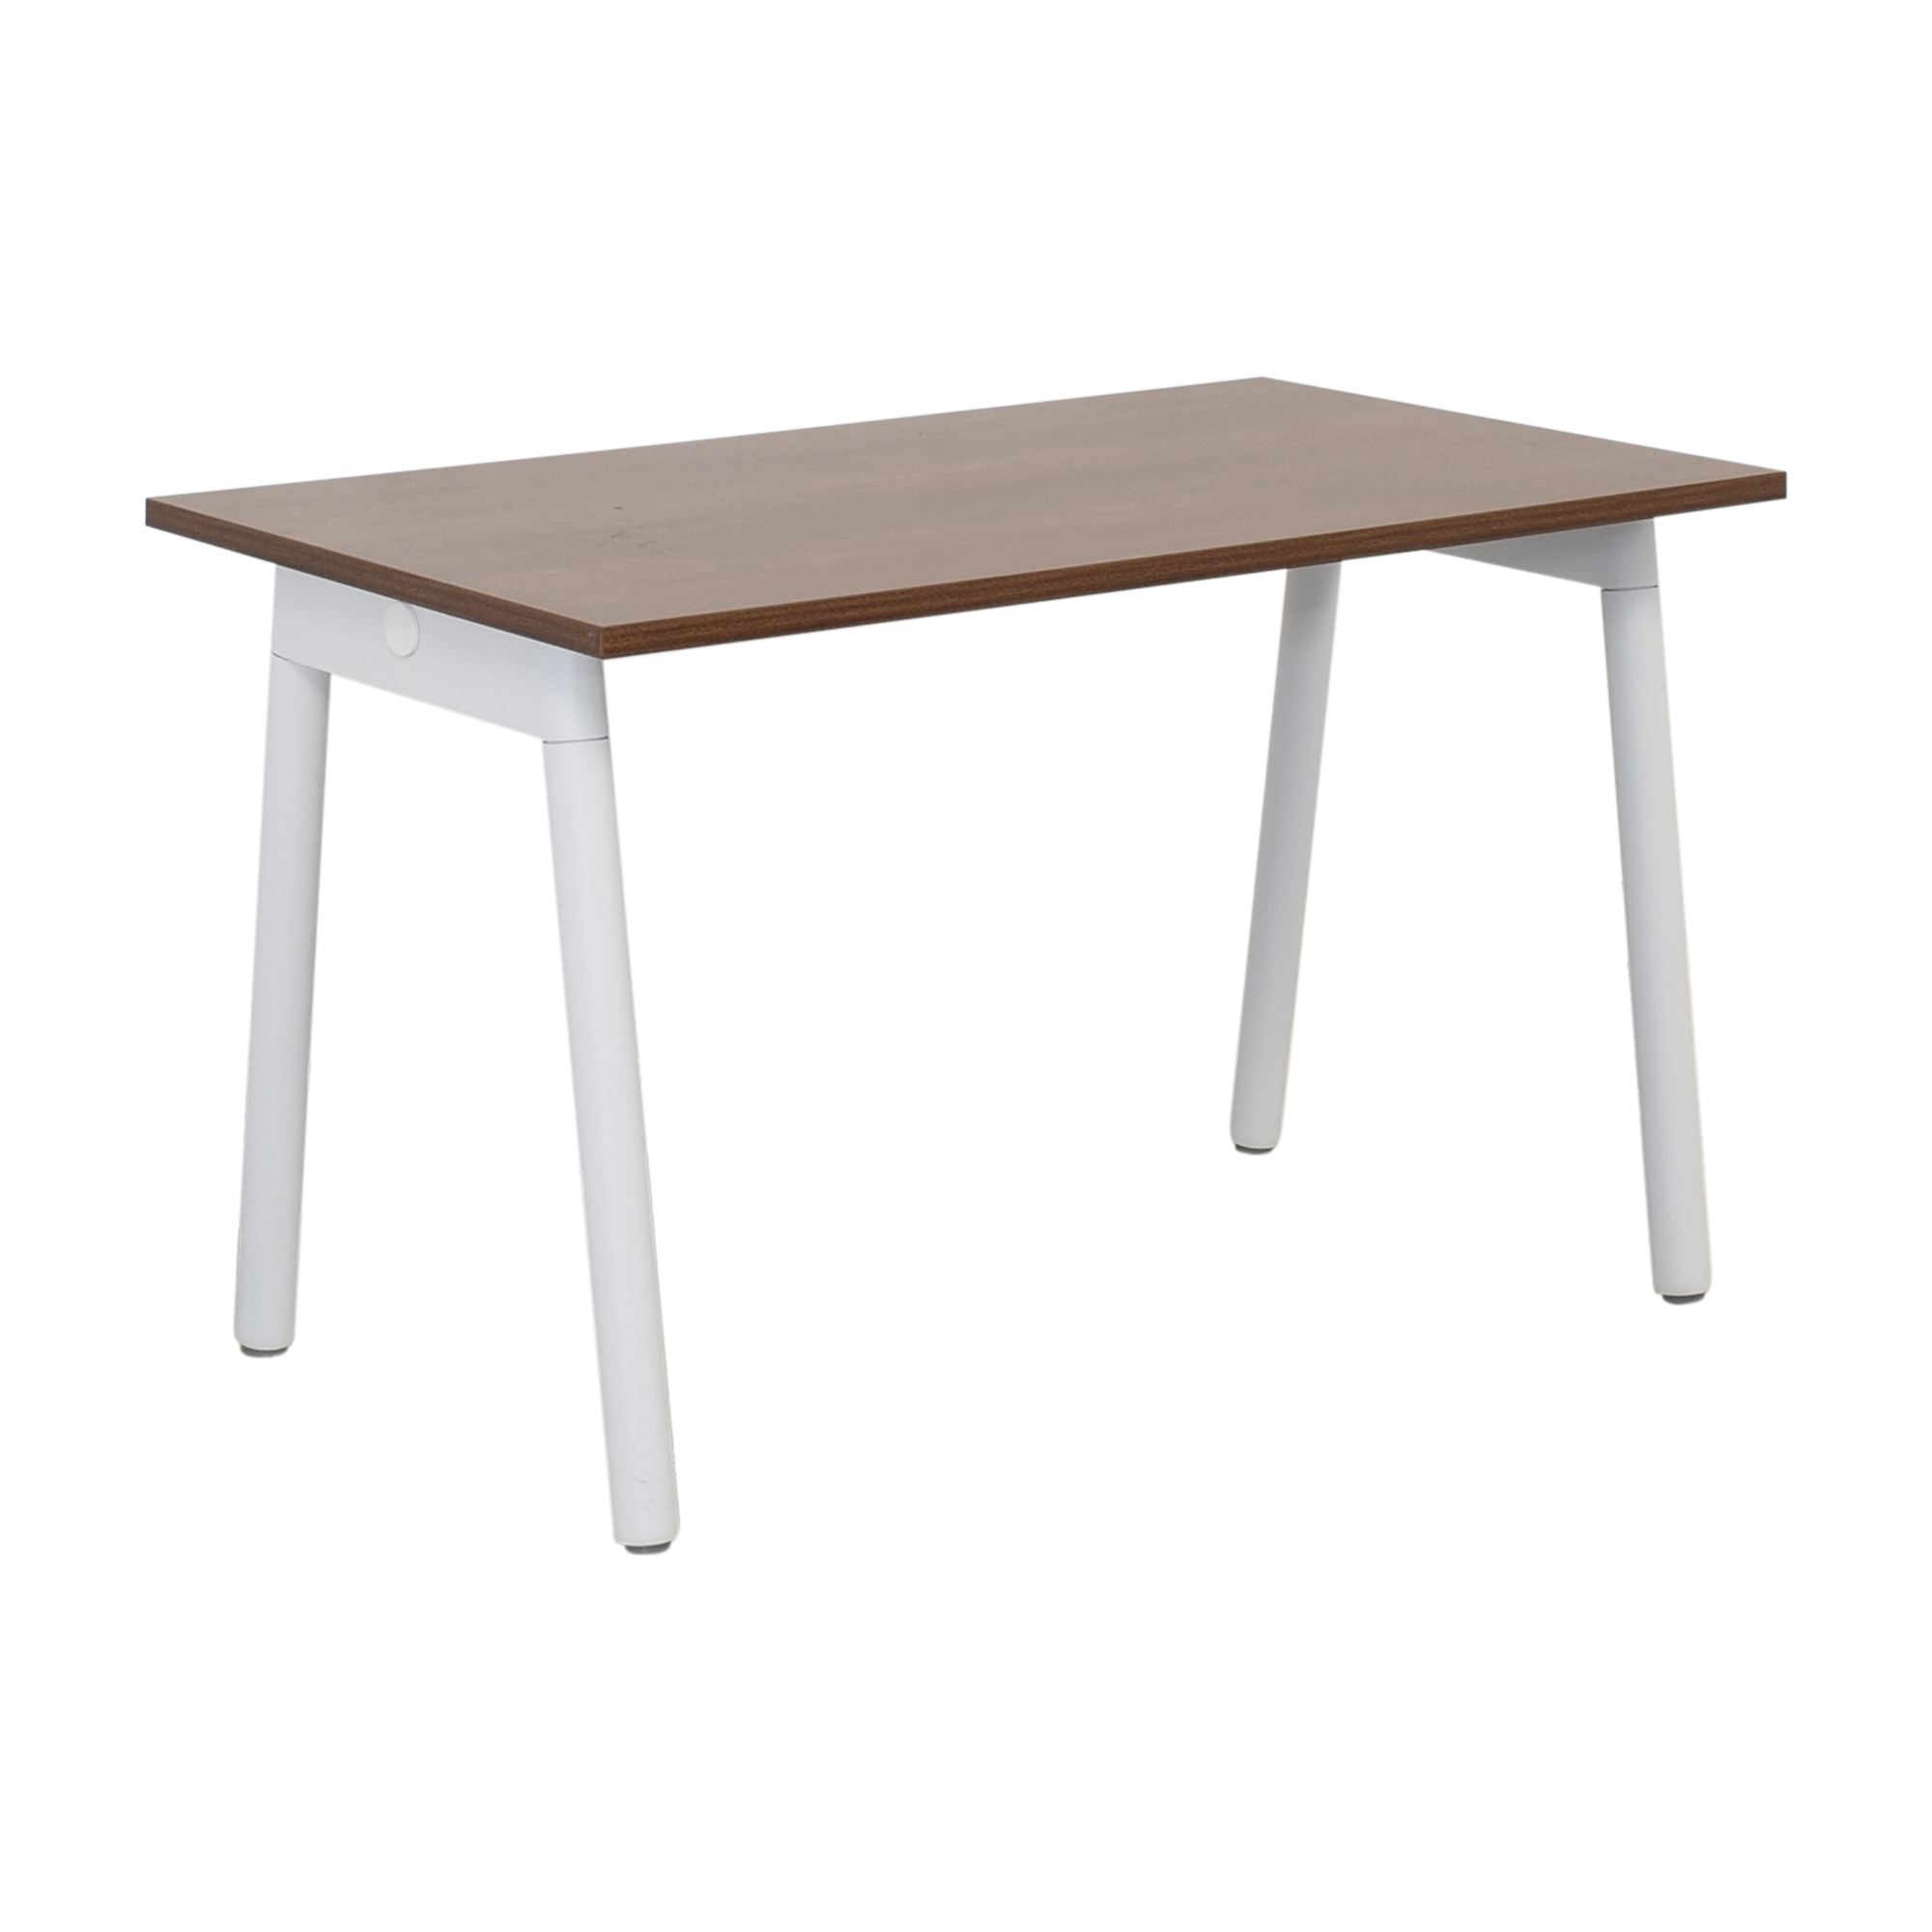 Poppin Poppin Series A Single Desk for One ct